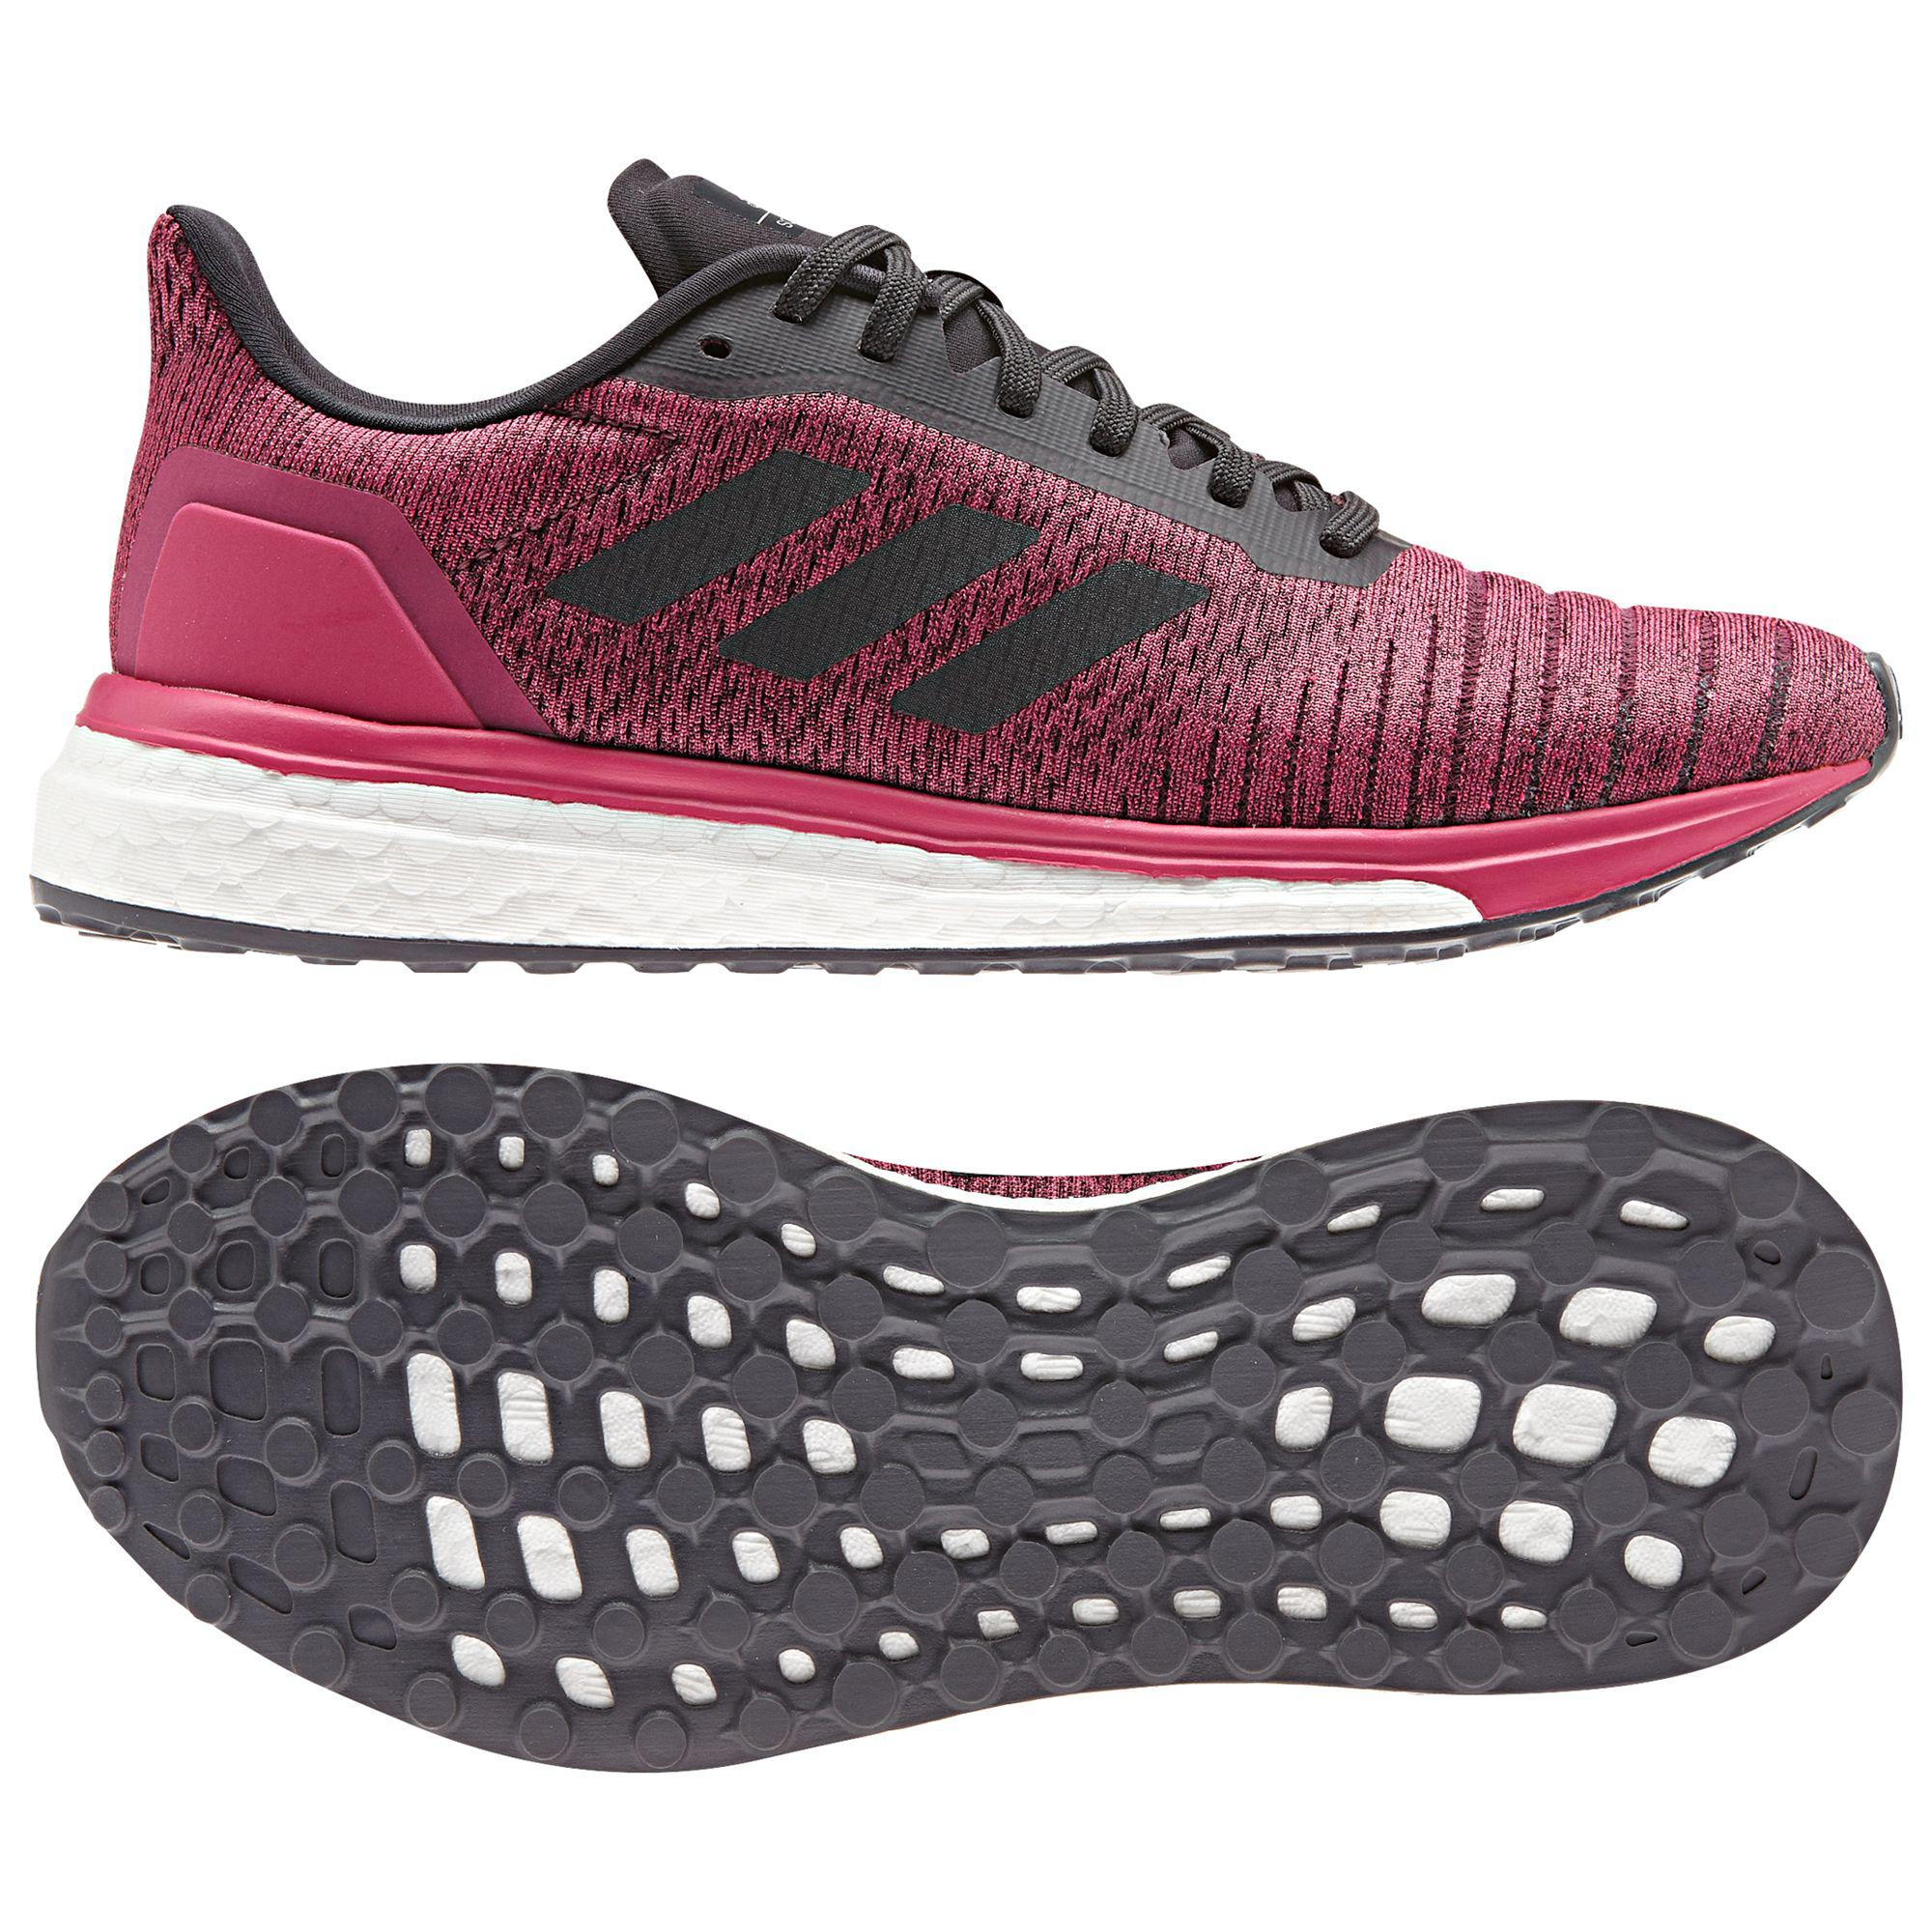 Adidas - Multicolor Solar Drive Women s Running Shoes - Lyst. View  fullscreen 423b6e774